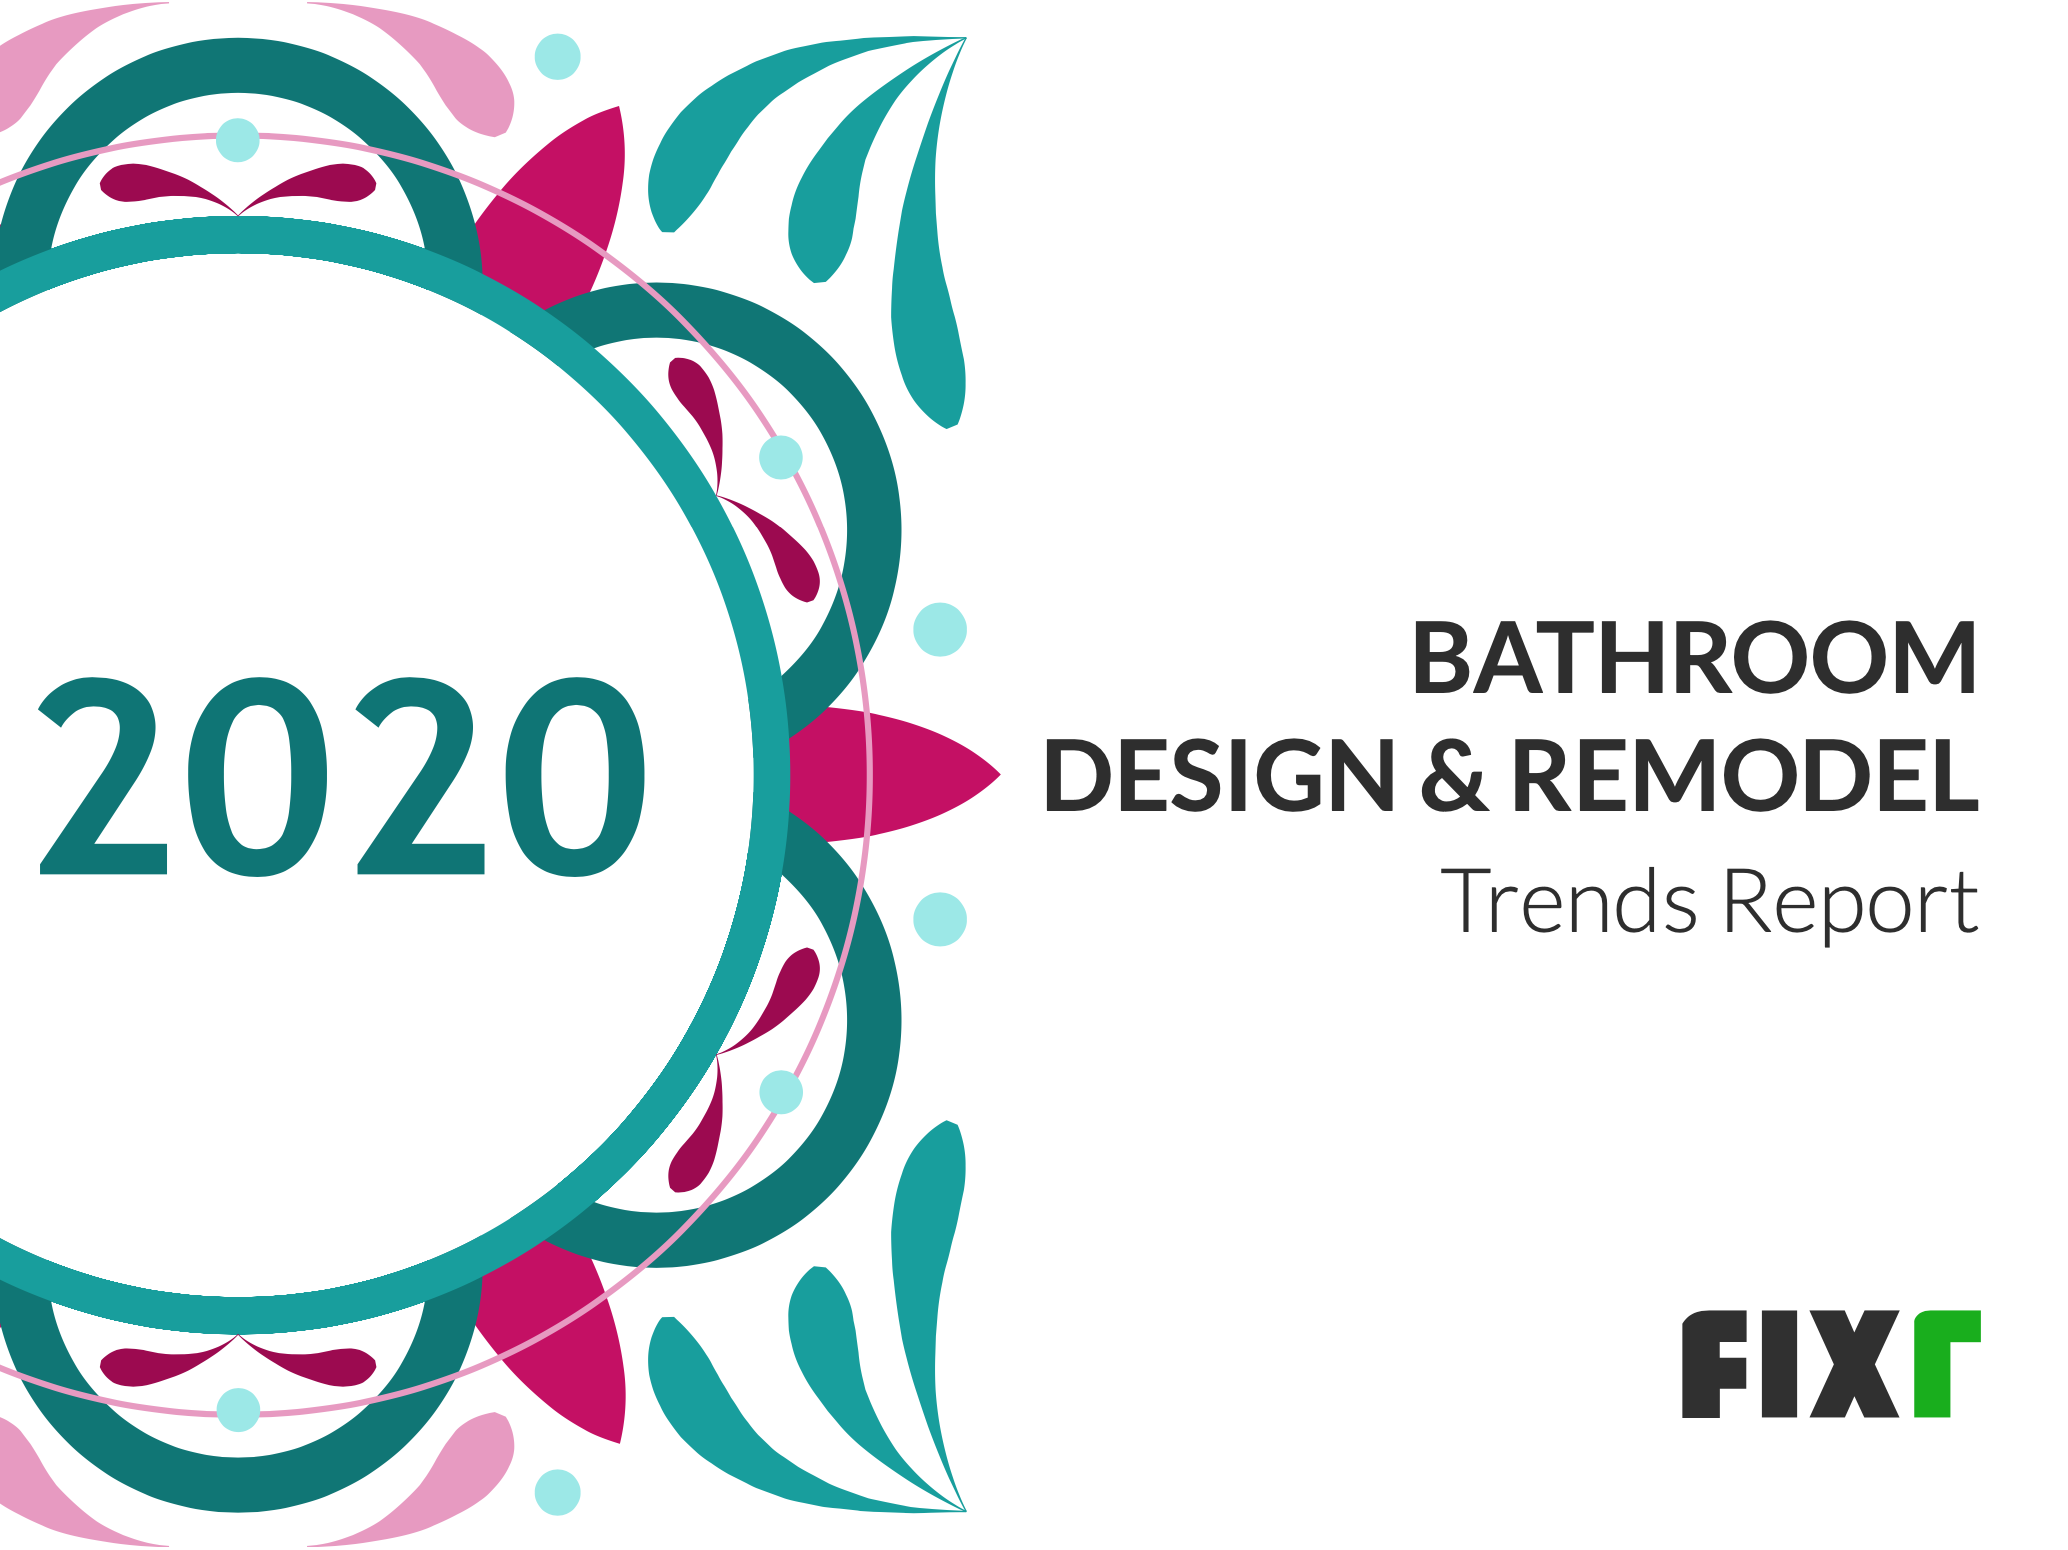 Bathroom Design & Remodel Trends in 2020